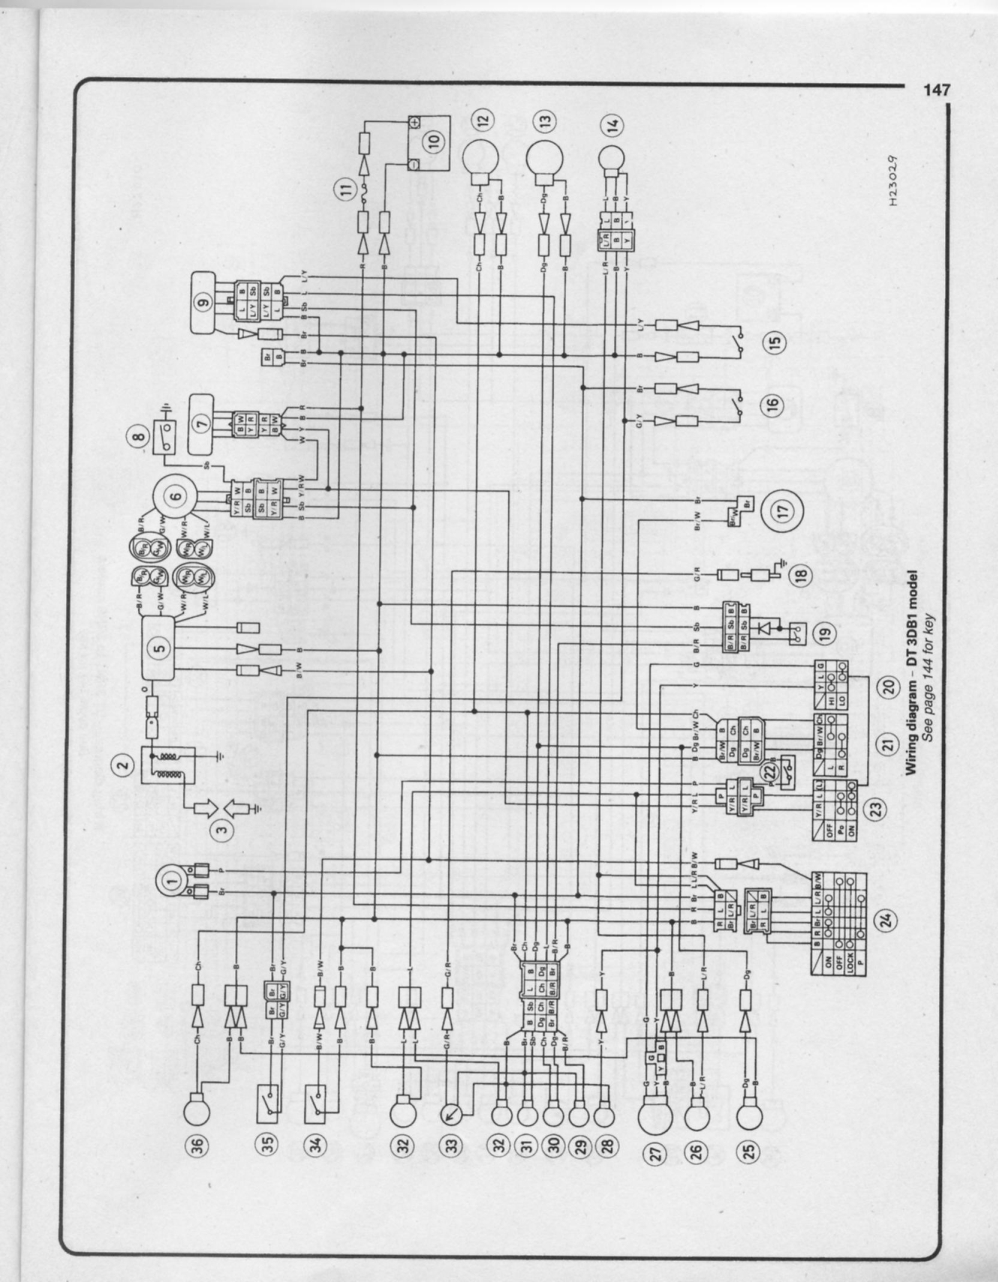 2012 01 01 archive on yamaha moto 4 wiring diagram